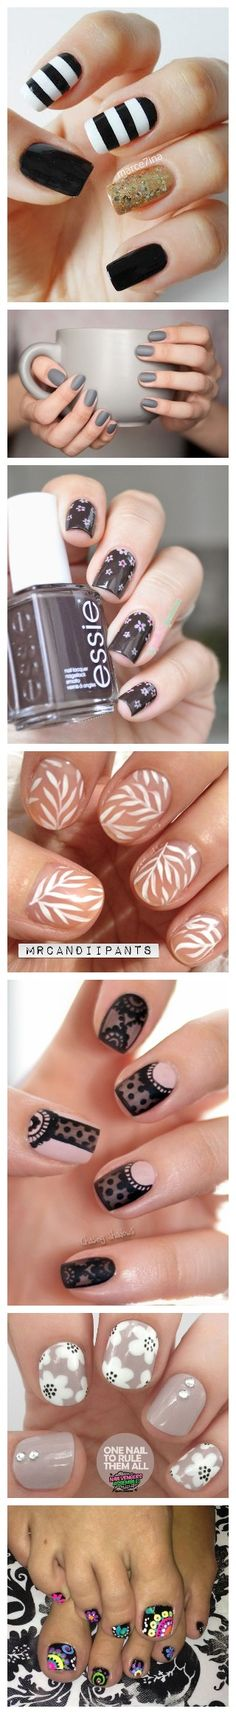 Art Nails - Nail Art Ideas and Designs Fabulous Nails, Gorgeous Nails, Pretty Nails, Fancy Nails, Love Nails, My Nails, Nail Art Diy, Easy Nail Art, Uñas Diy